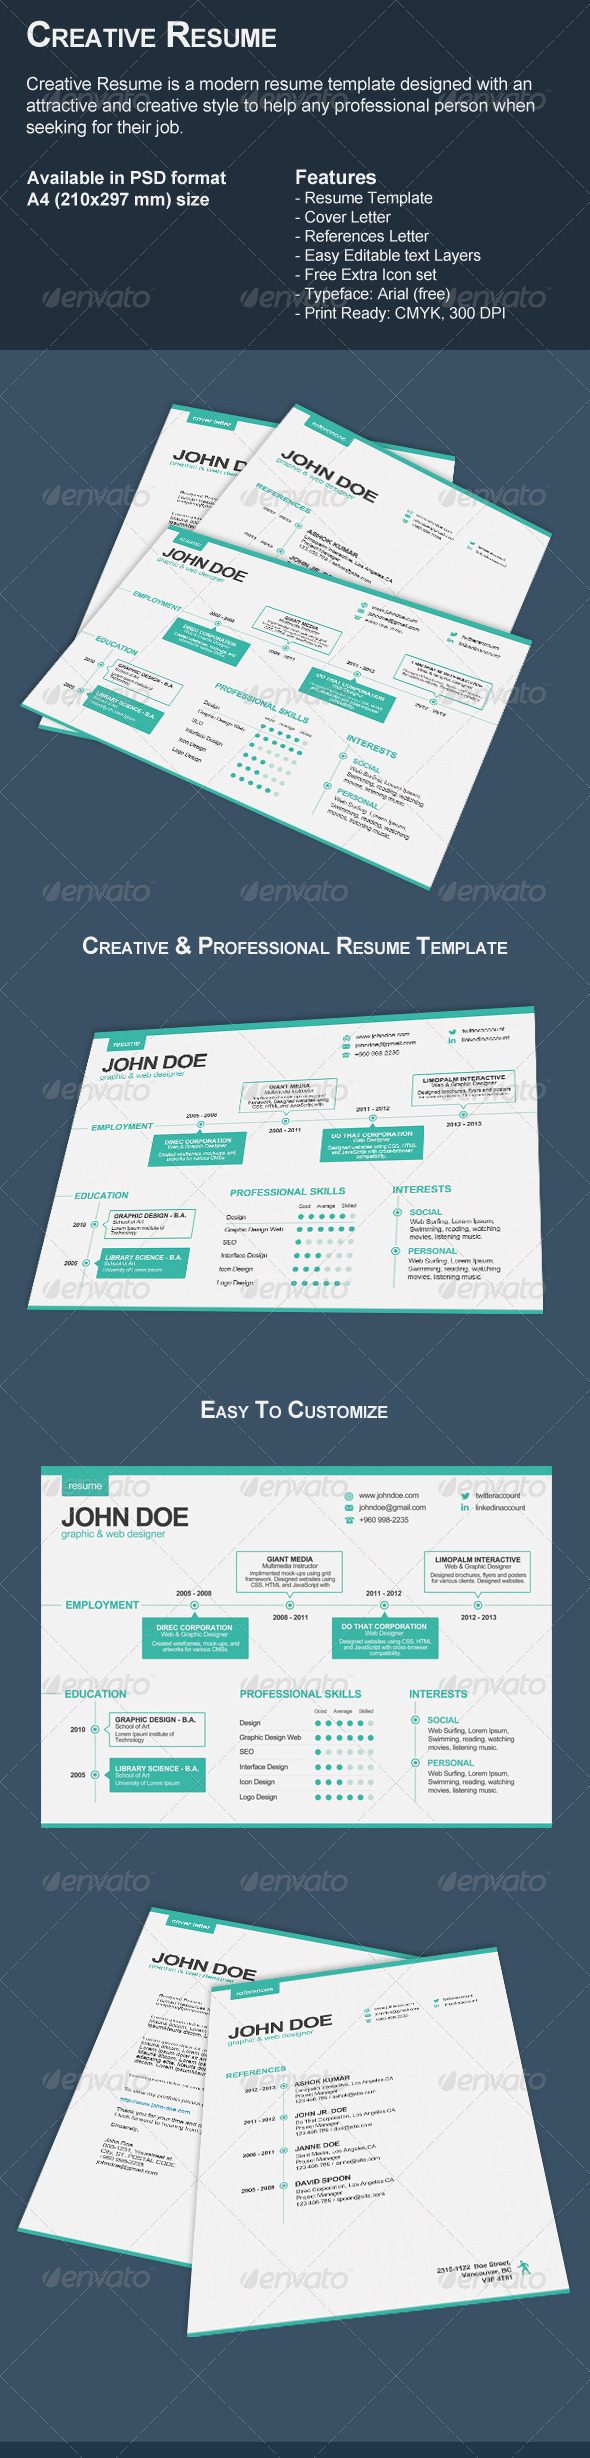 GraphicRiver 3-Piece Creative Resume Set 7231660